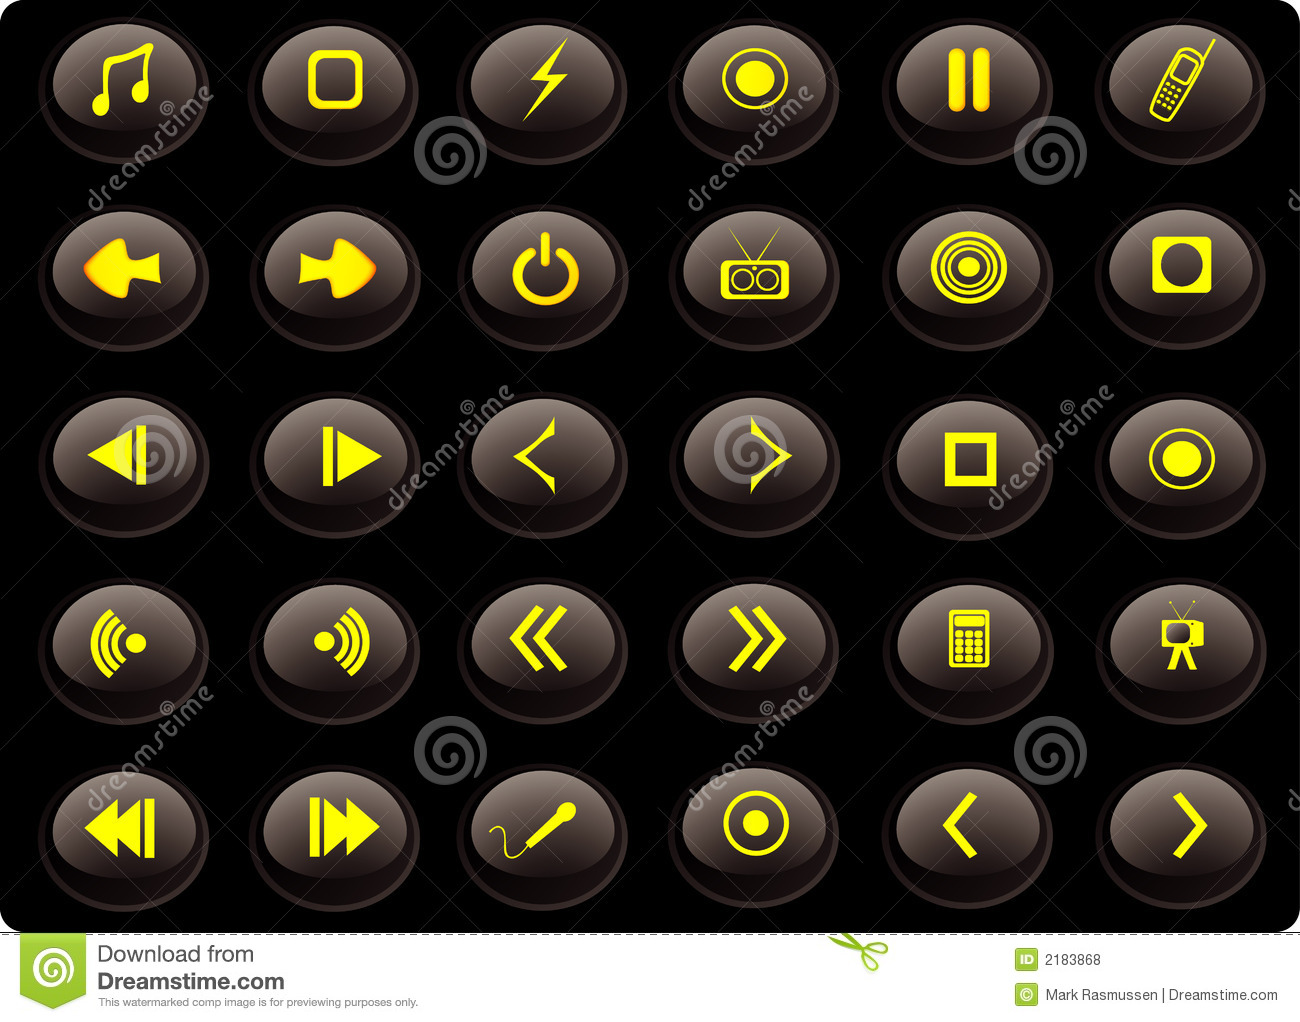 Black And Yellow Media Buttons Stock Vector Illustration Of Arrows